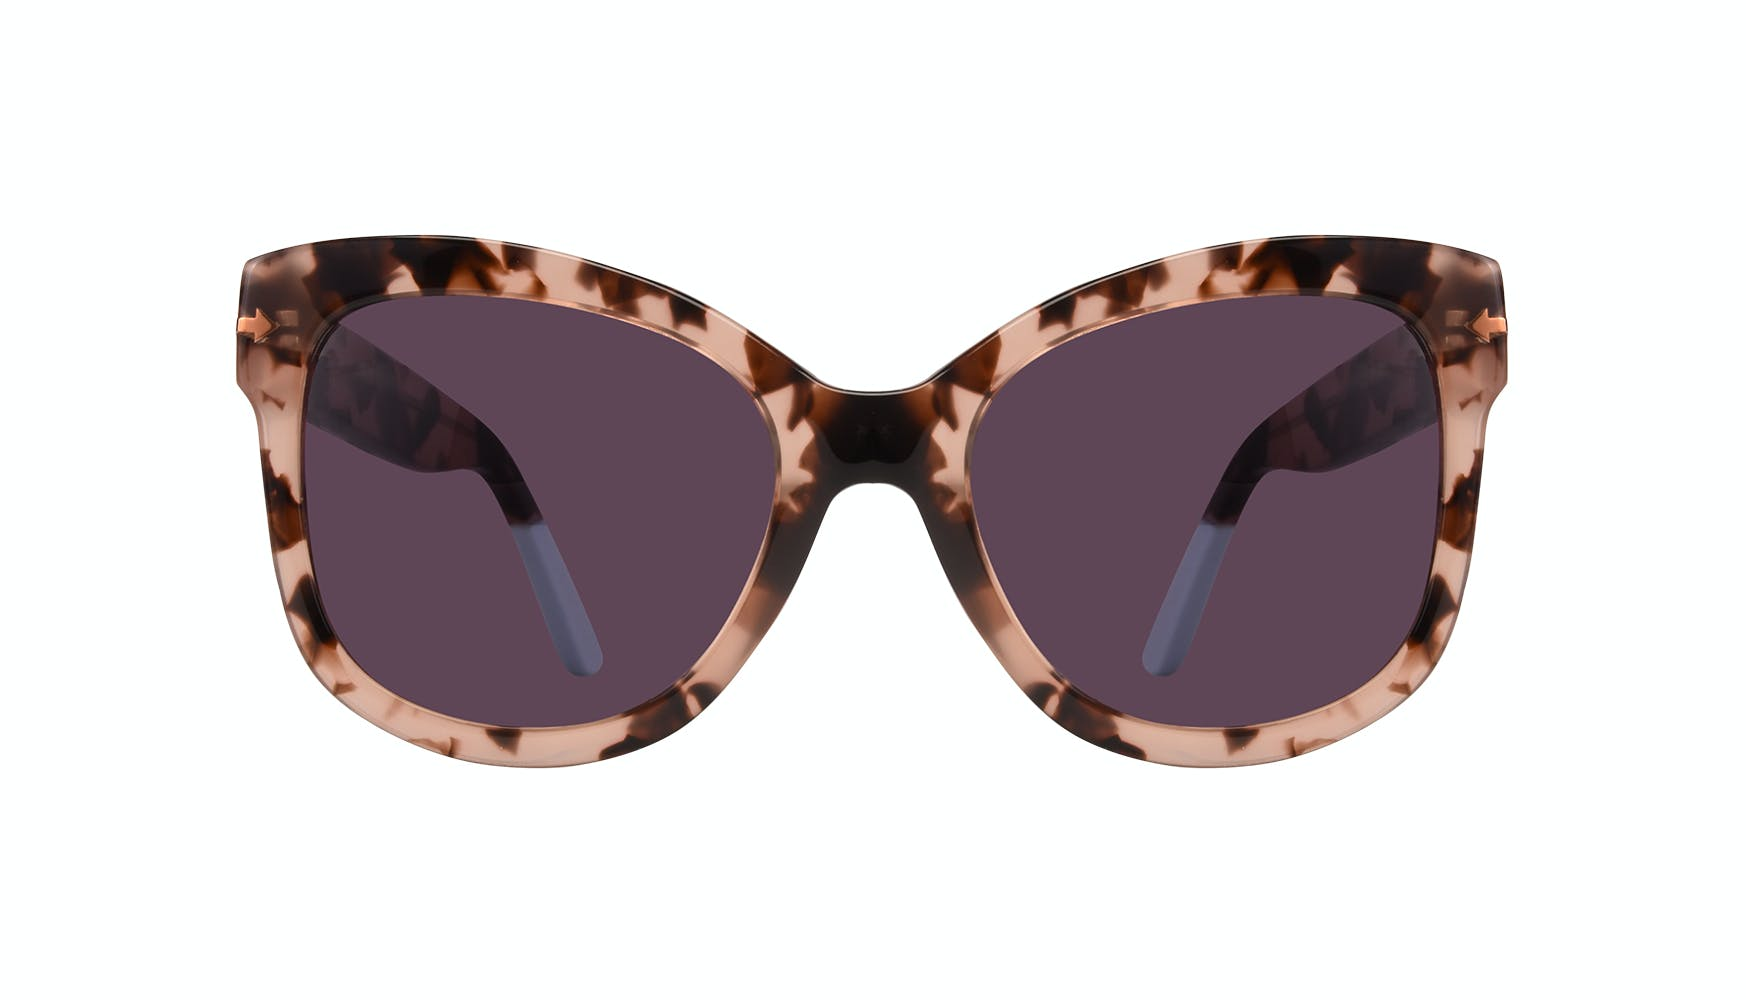 Affordable Fashion Glasses Cat Eye Square Sunglasses Women Marlo Coastal Front